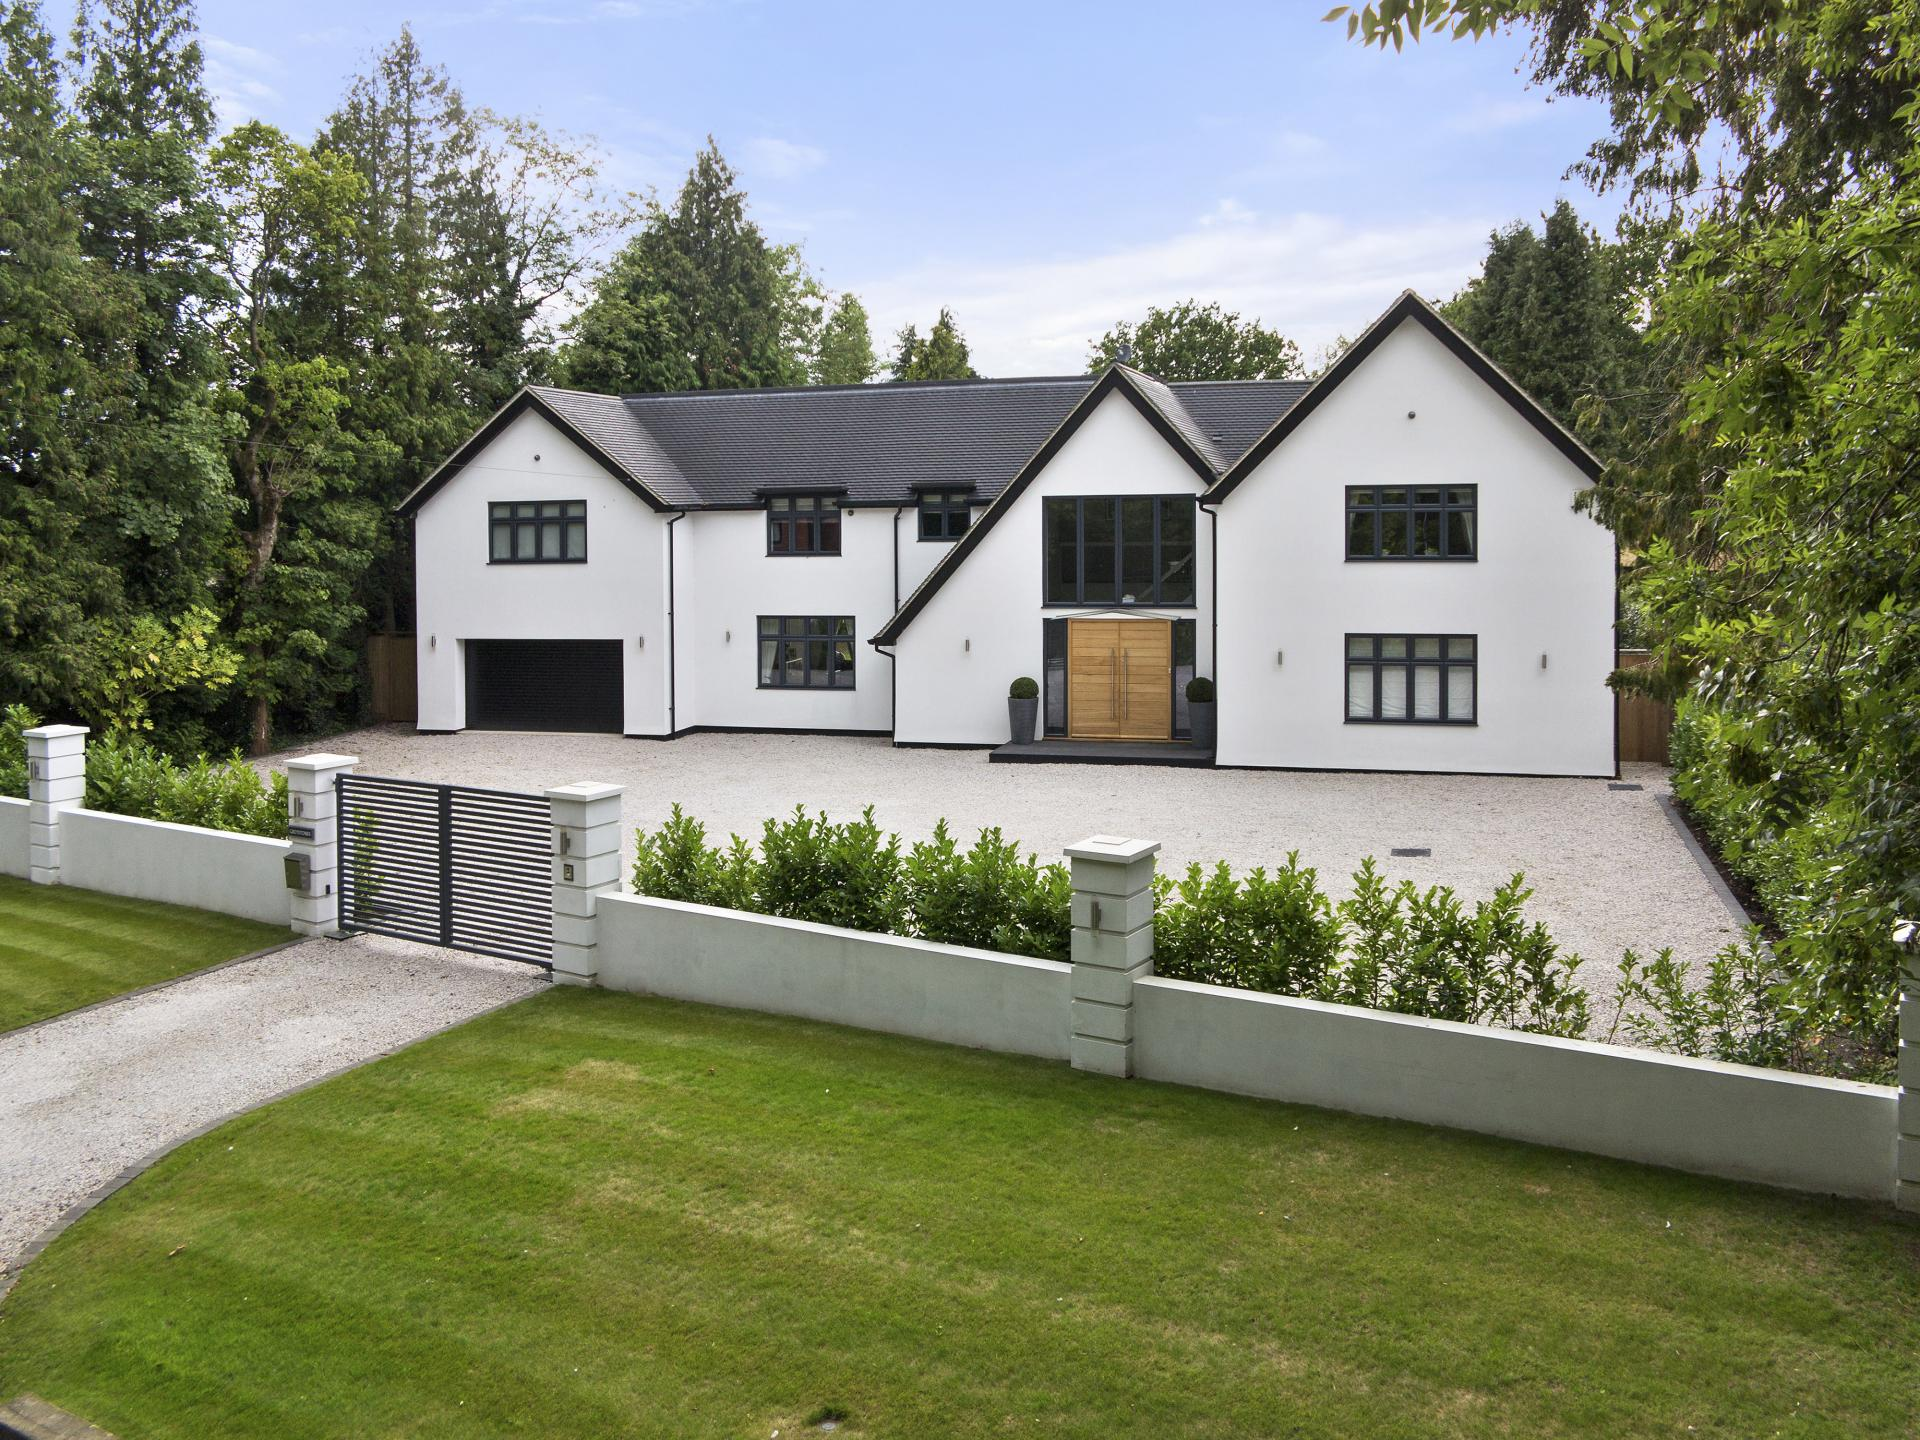 6 bedroom House for sale in Chipstead